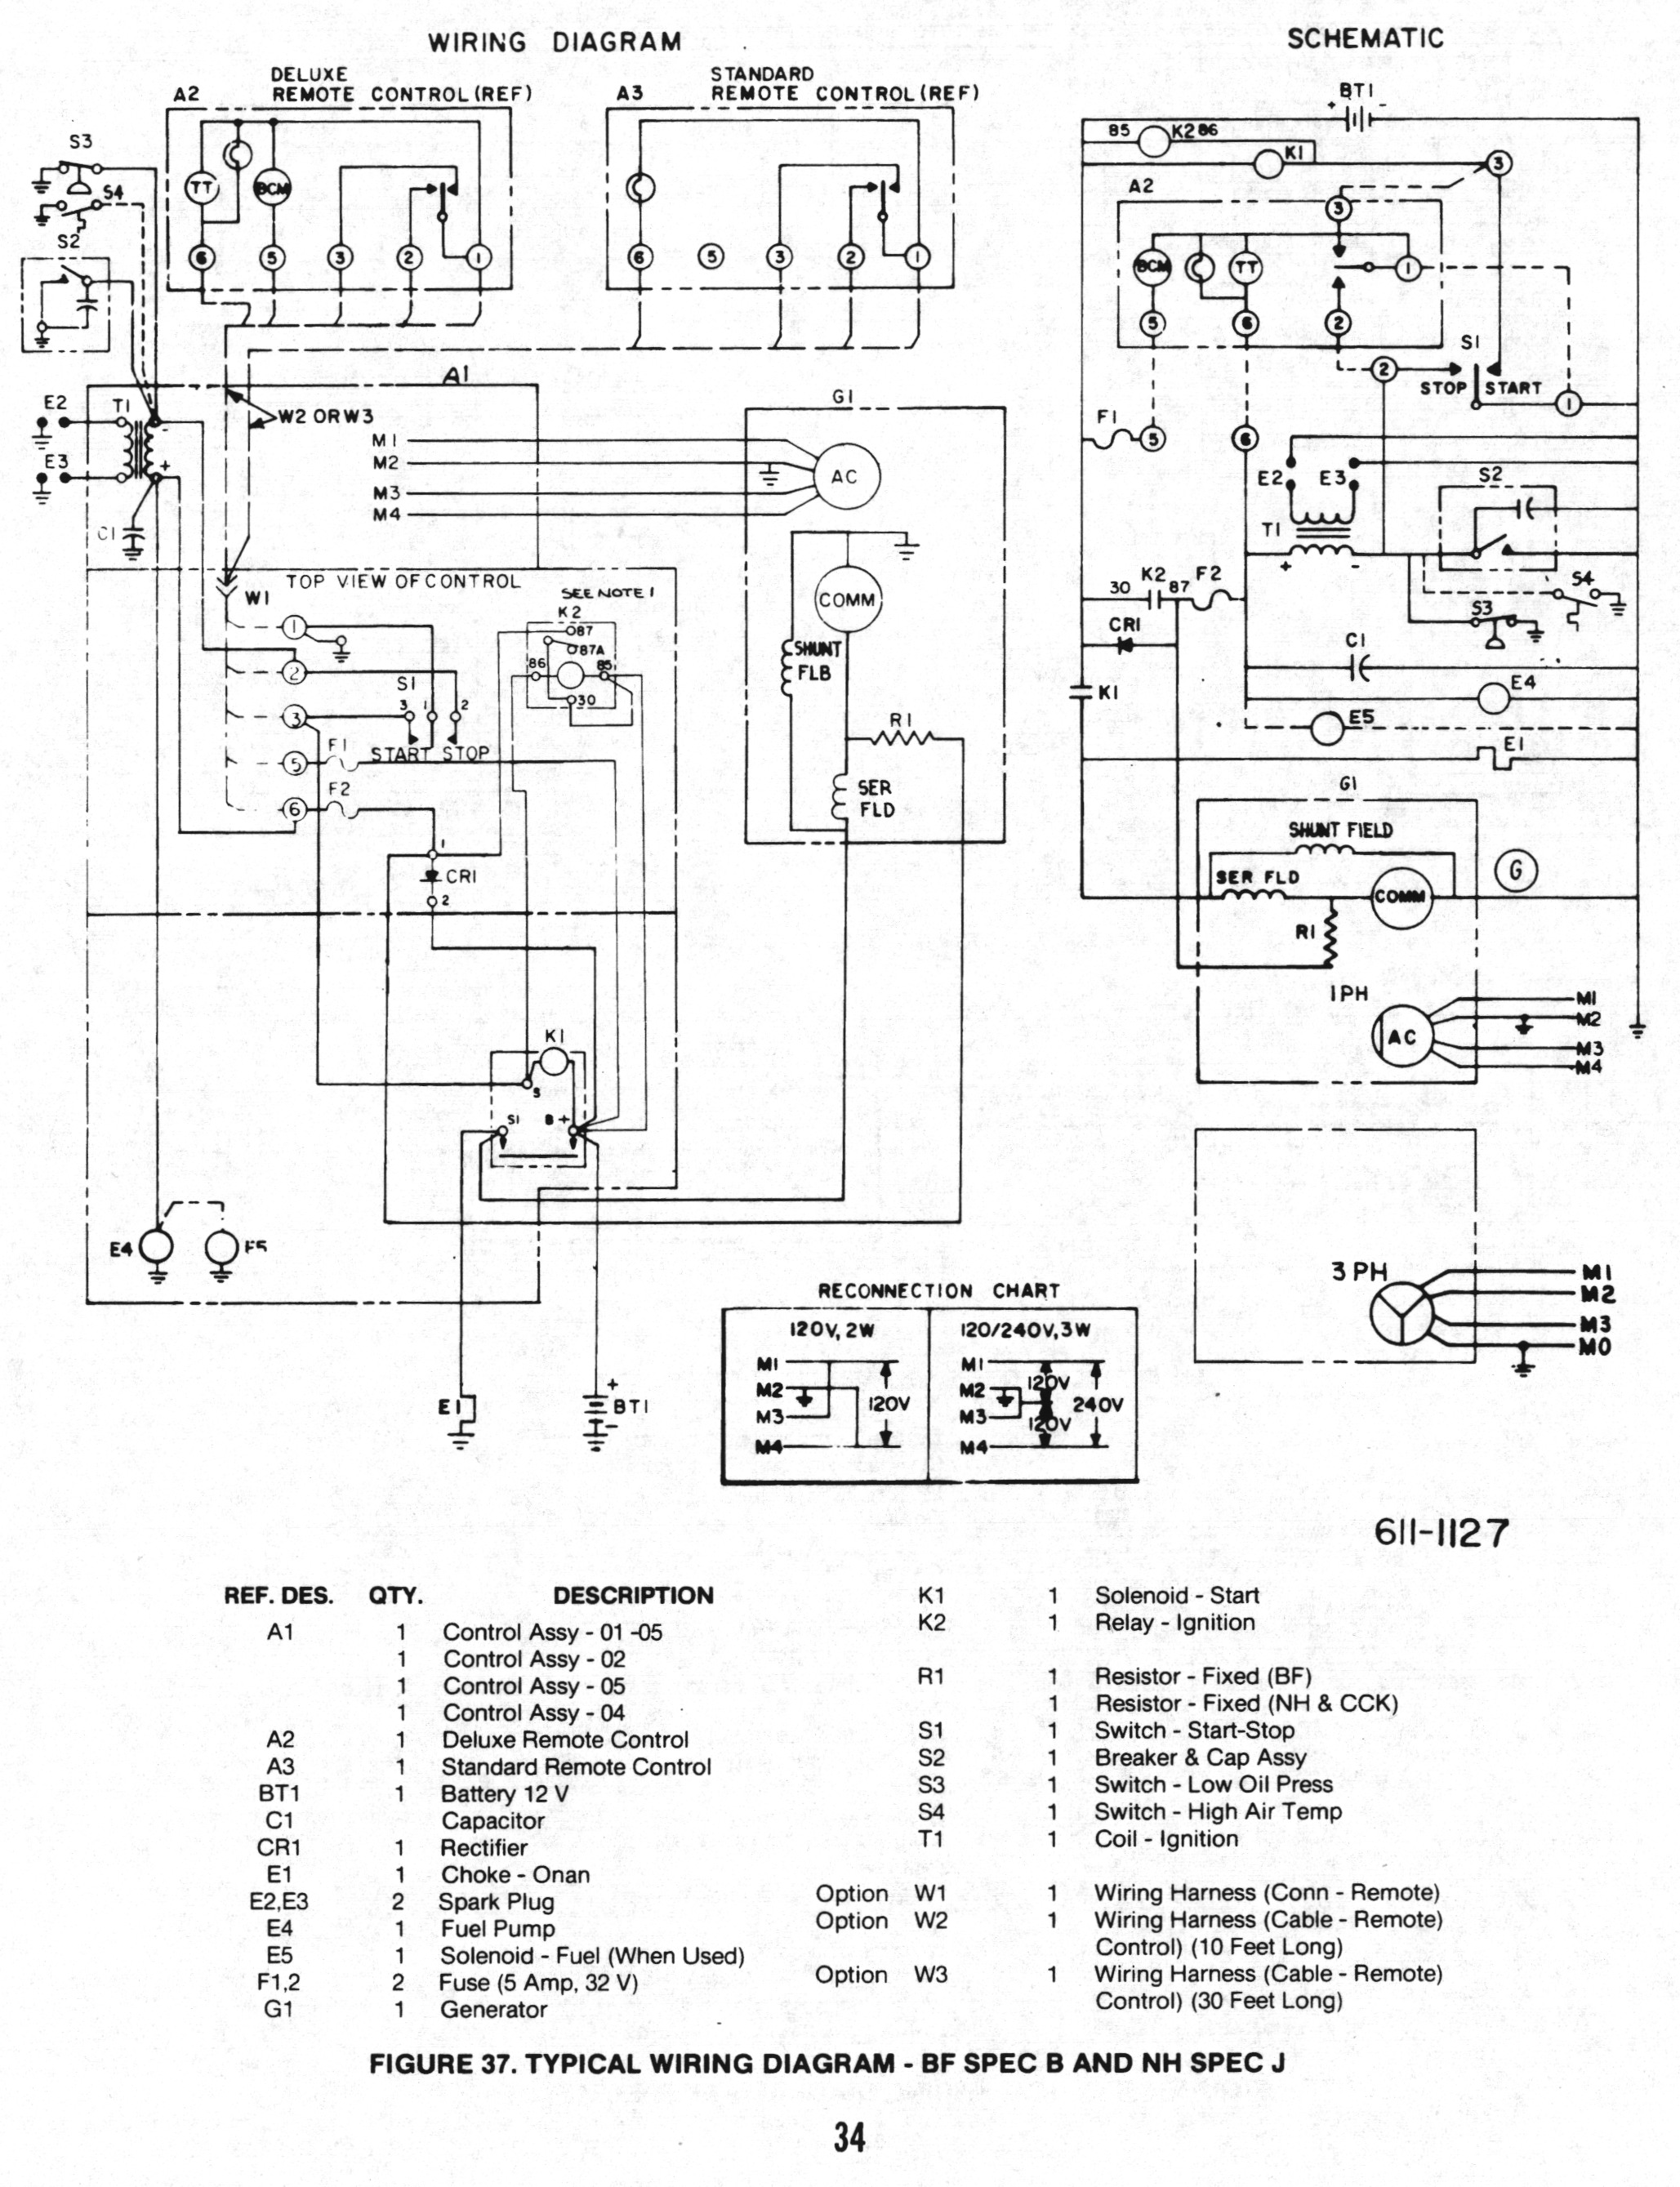 Emerald Plus 6500 Onan Generator Schematic Wiring Diagram Circuit Service Manual For Bf Bfa Bga Nh 900 0337 Page 34